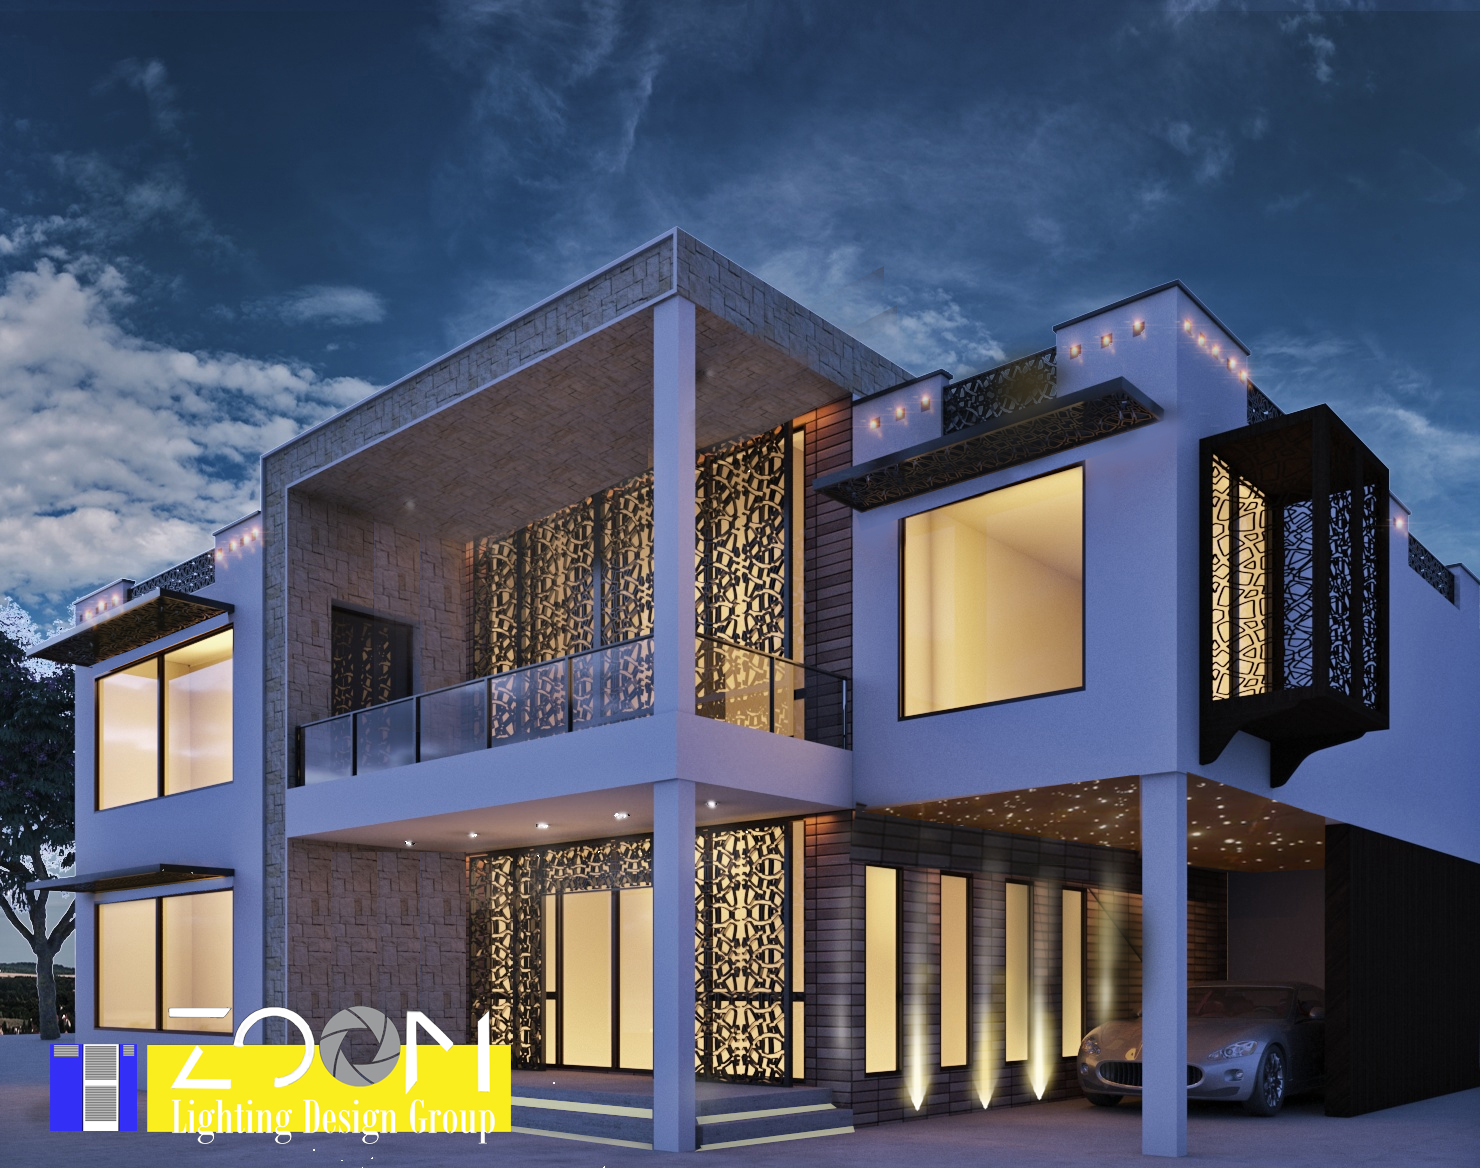 Architectural lighting design of villa